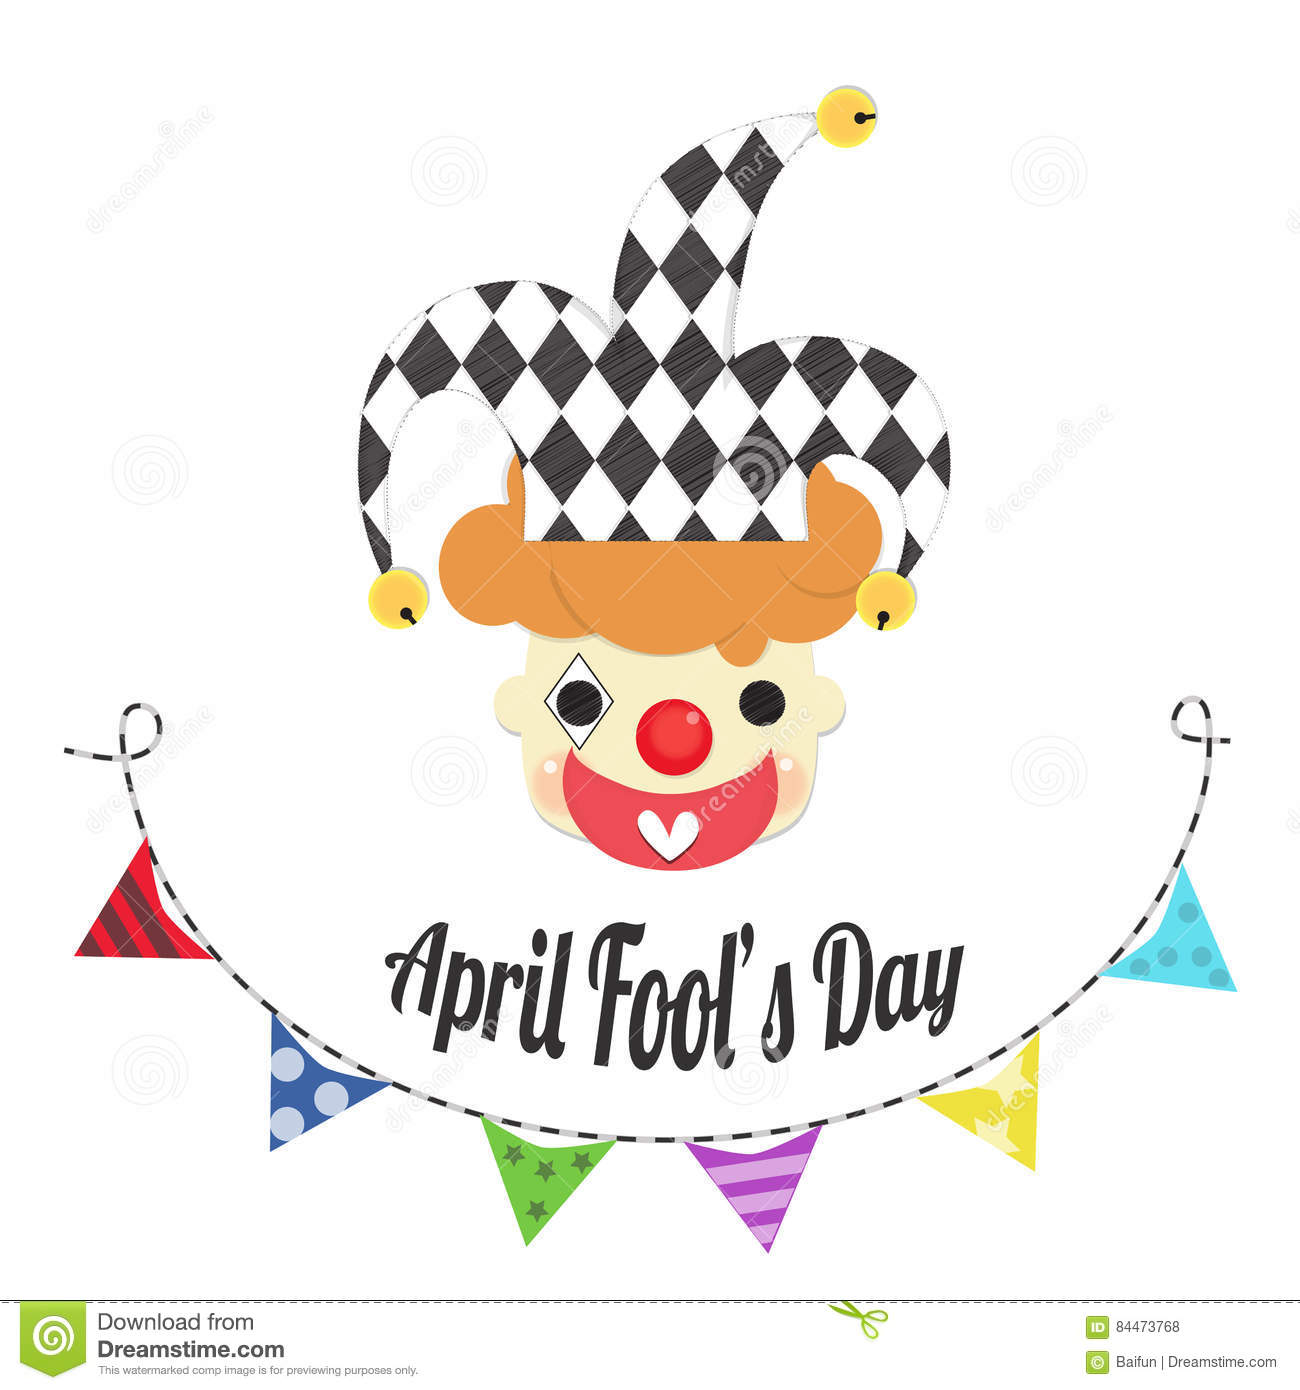 Colorful fool clipart cute image black and white download April Fools Day With Joker Head Stock Vector - Image: 84473768 image black and white download